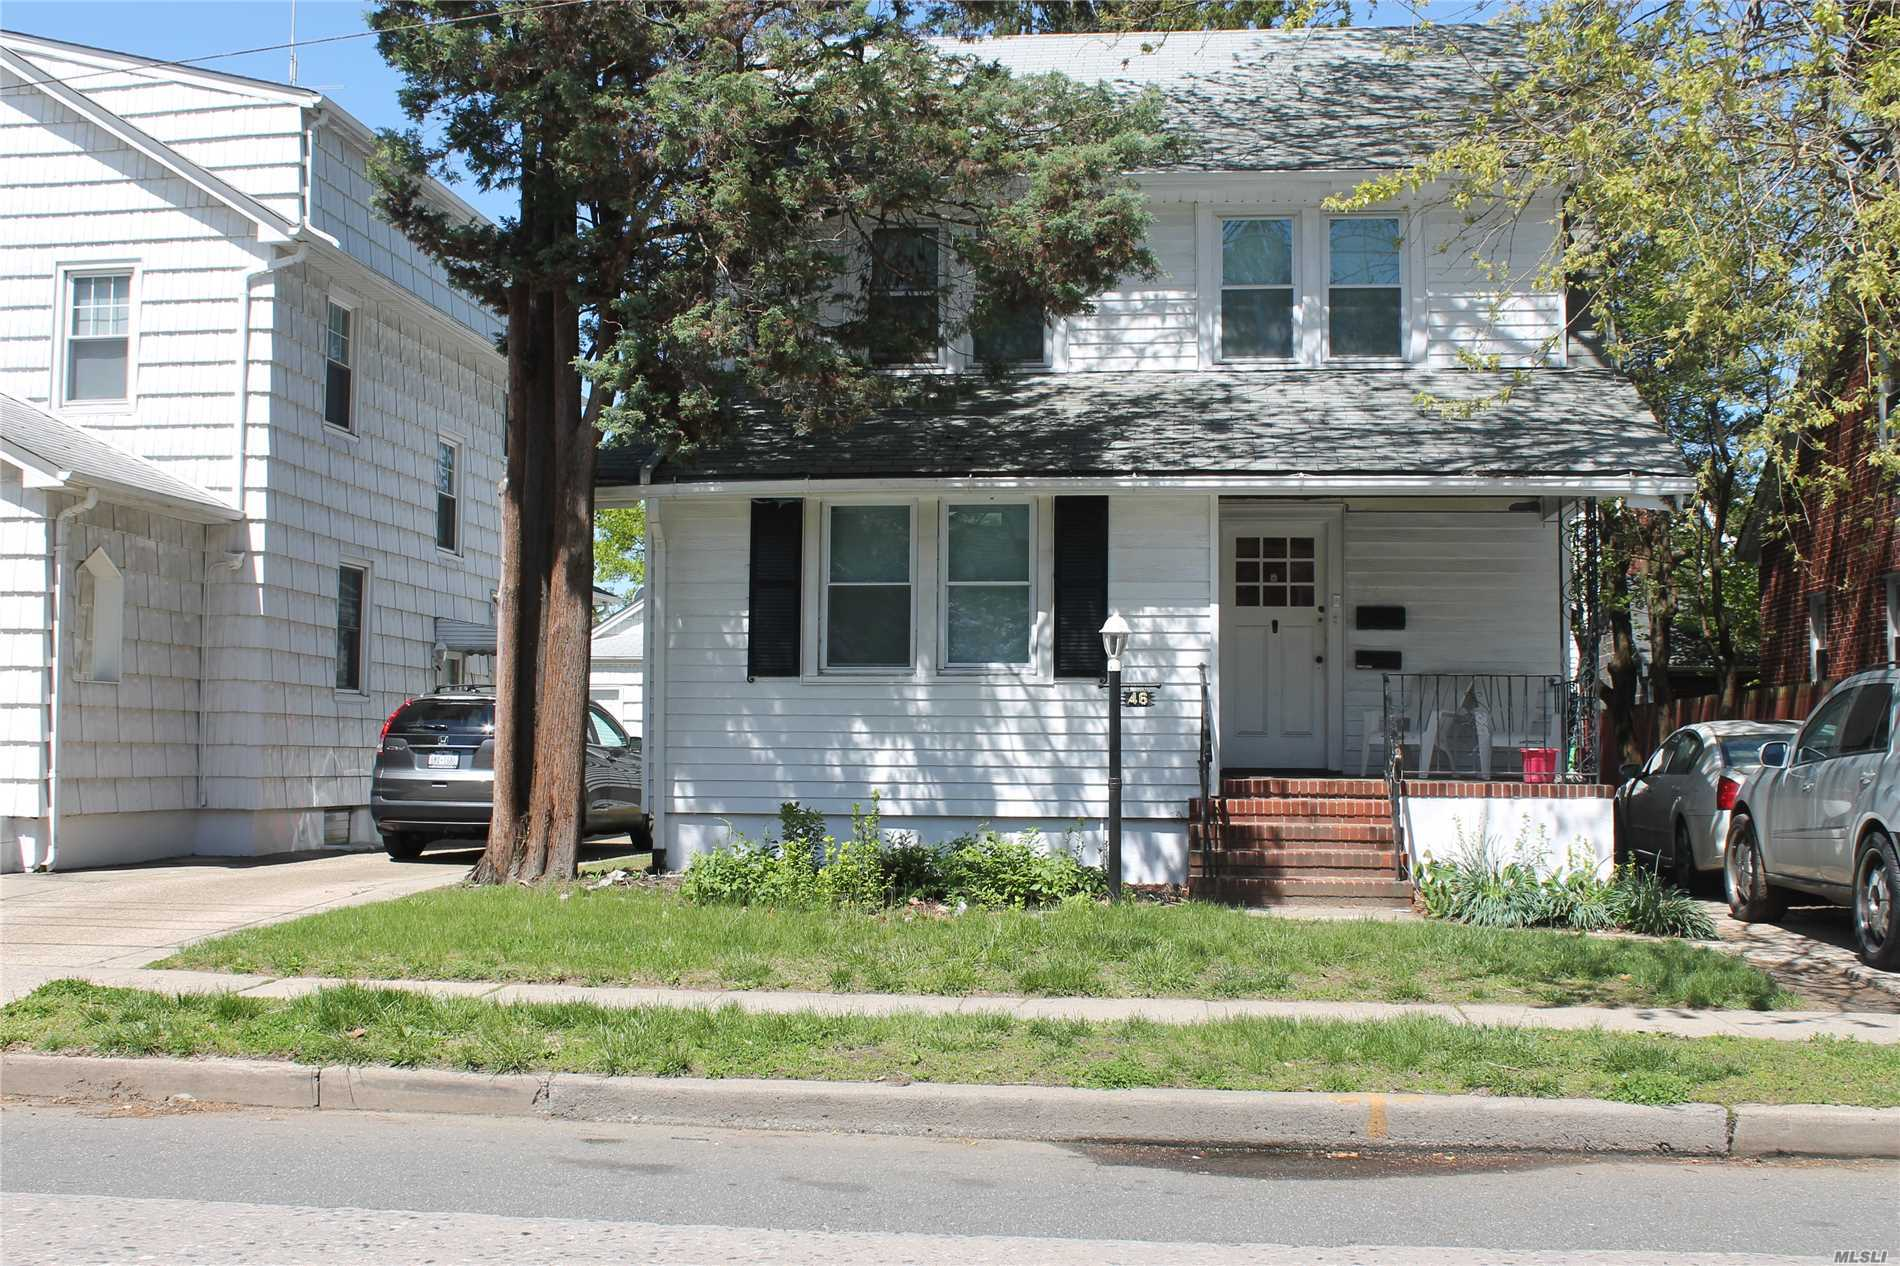 First Floor unit. Large - Must See! Br, Living Room, Large Dining Room, Full Kitchen, Huge Master Bedroom, Full Bath, Rec Room, Washer/Dryer, Porch, Yard, Usage. Air conditioning allowed at tenants expense and $100/mo from June-August ** Unit will have vacancy on June 15th.